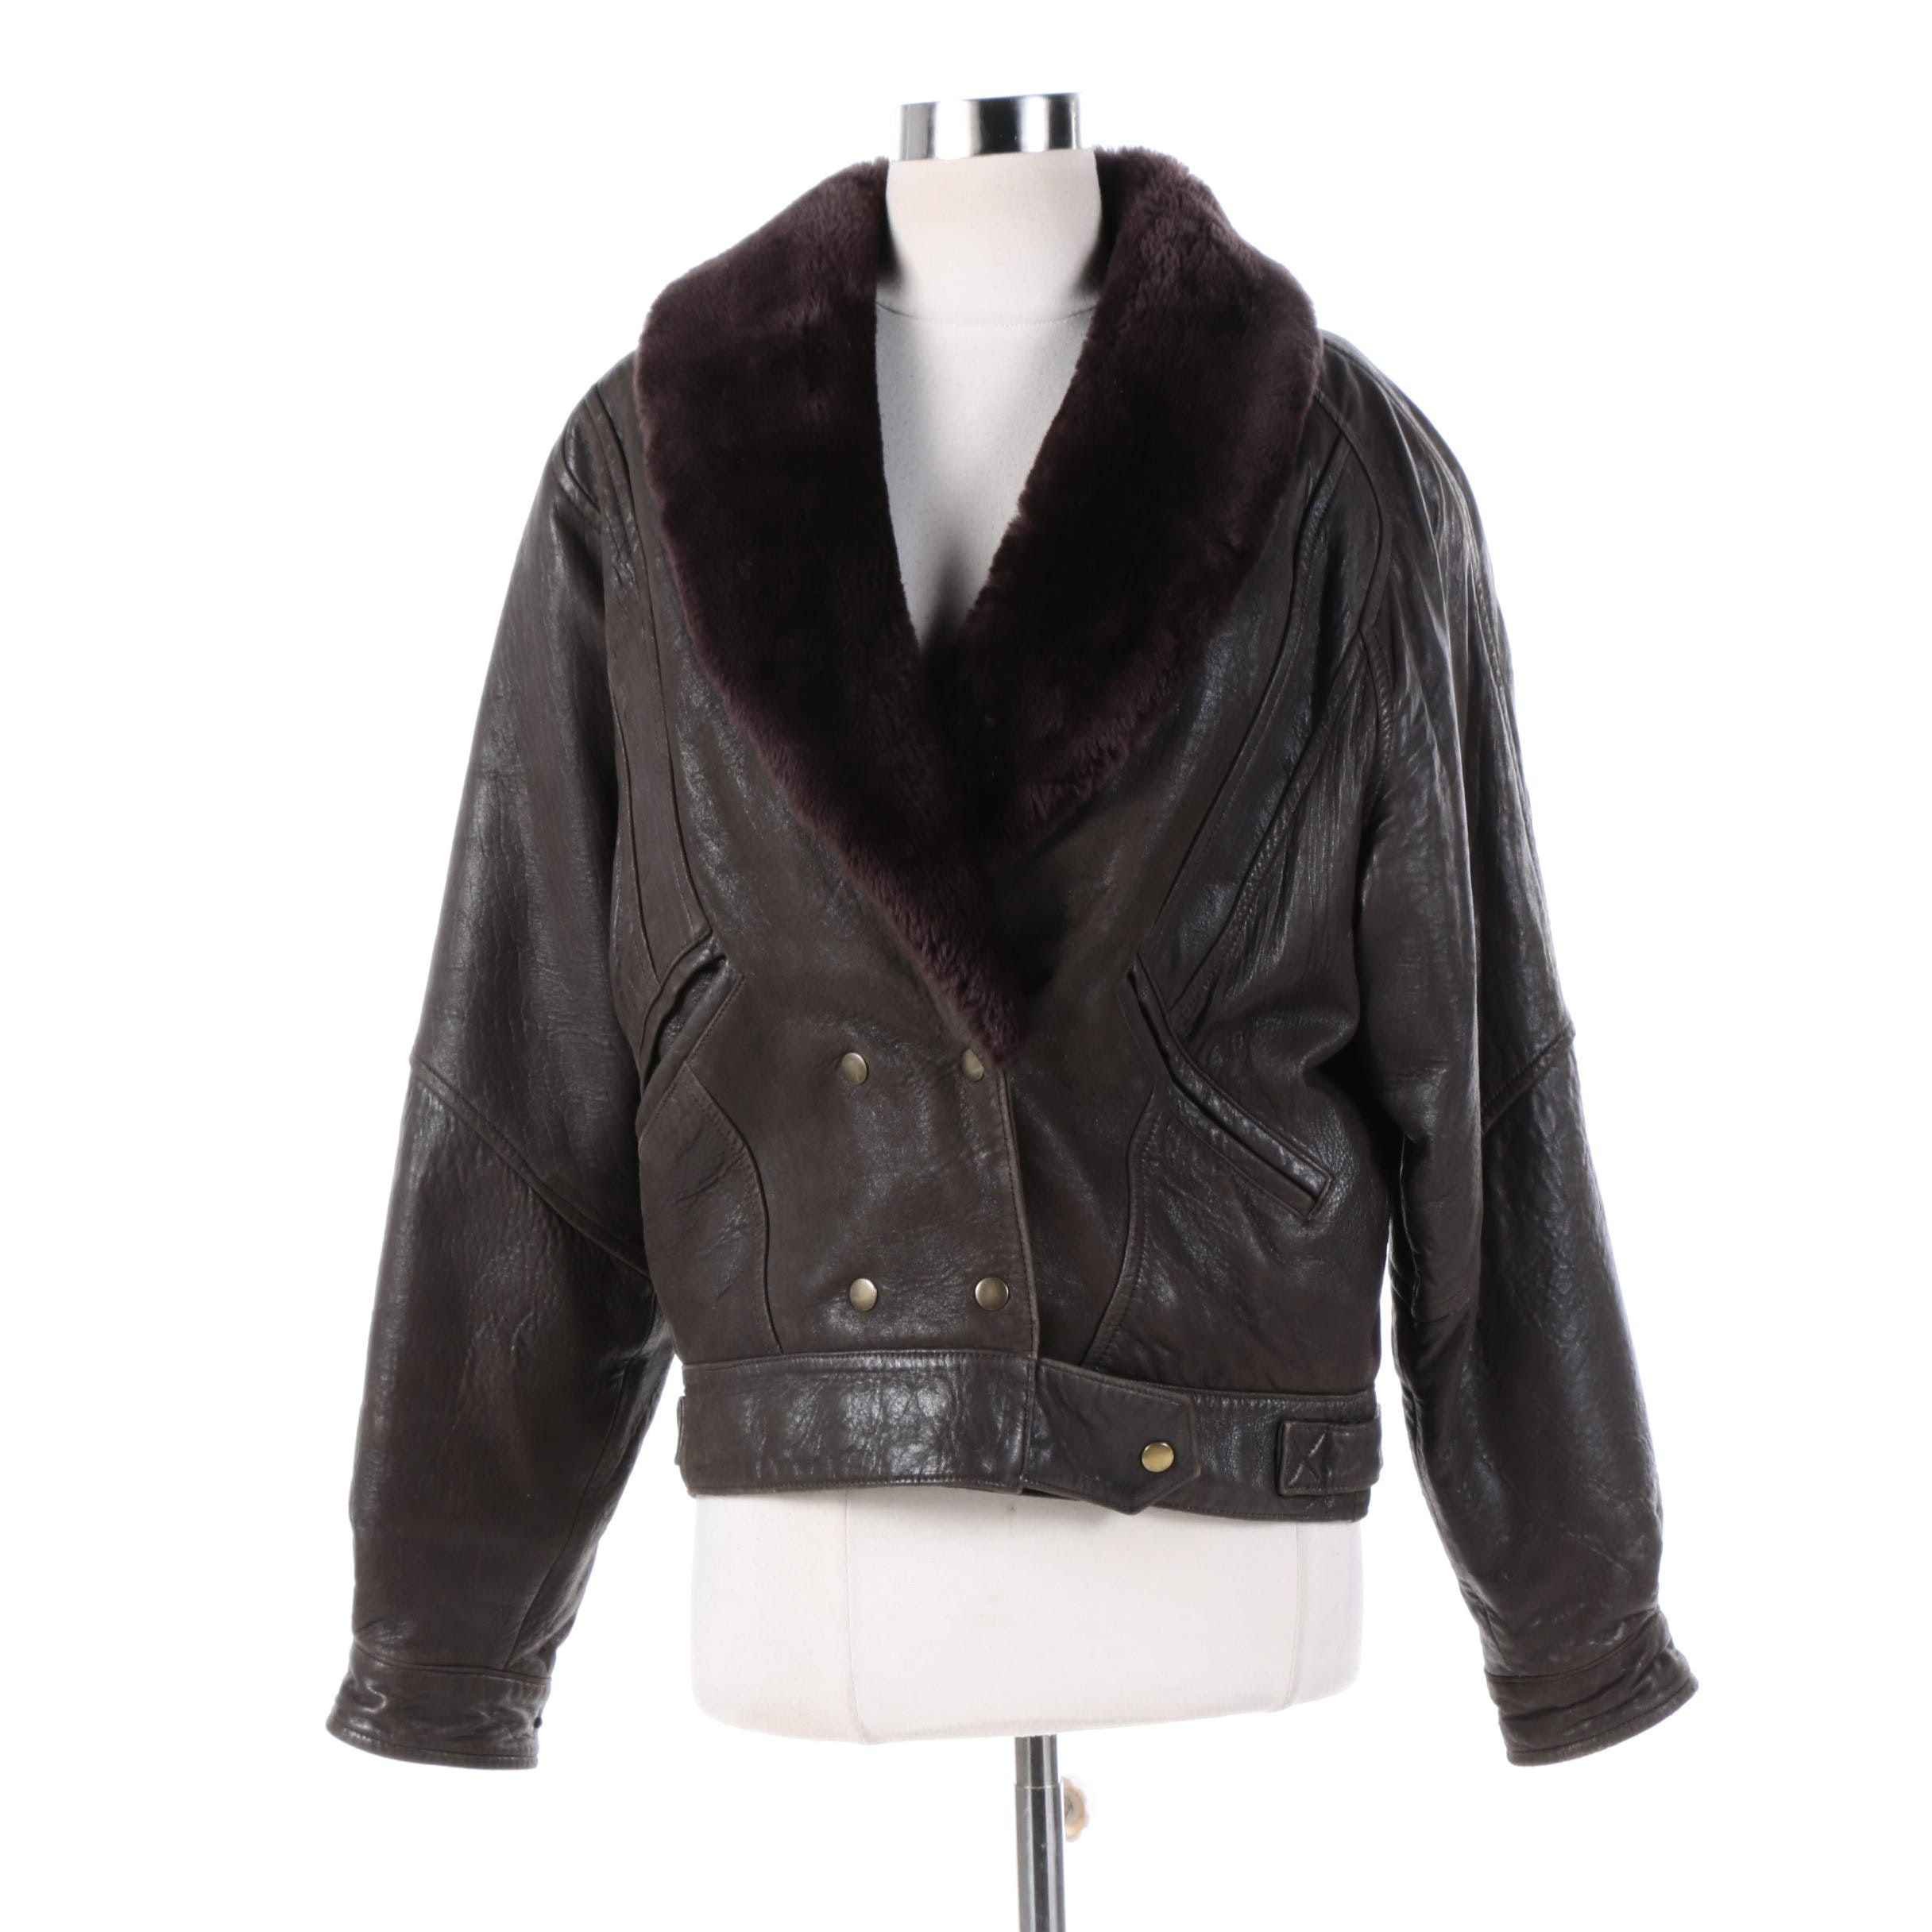 Women's Overland Outfitters Brown Leather Bomber Jacket with Faux Fur Collar